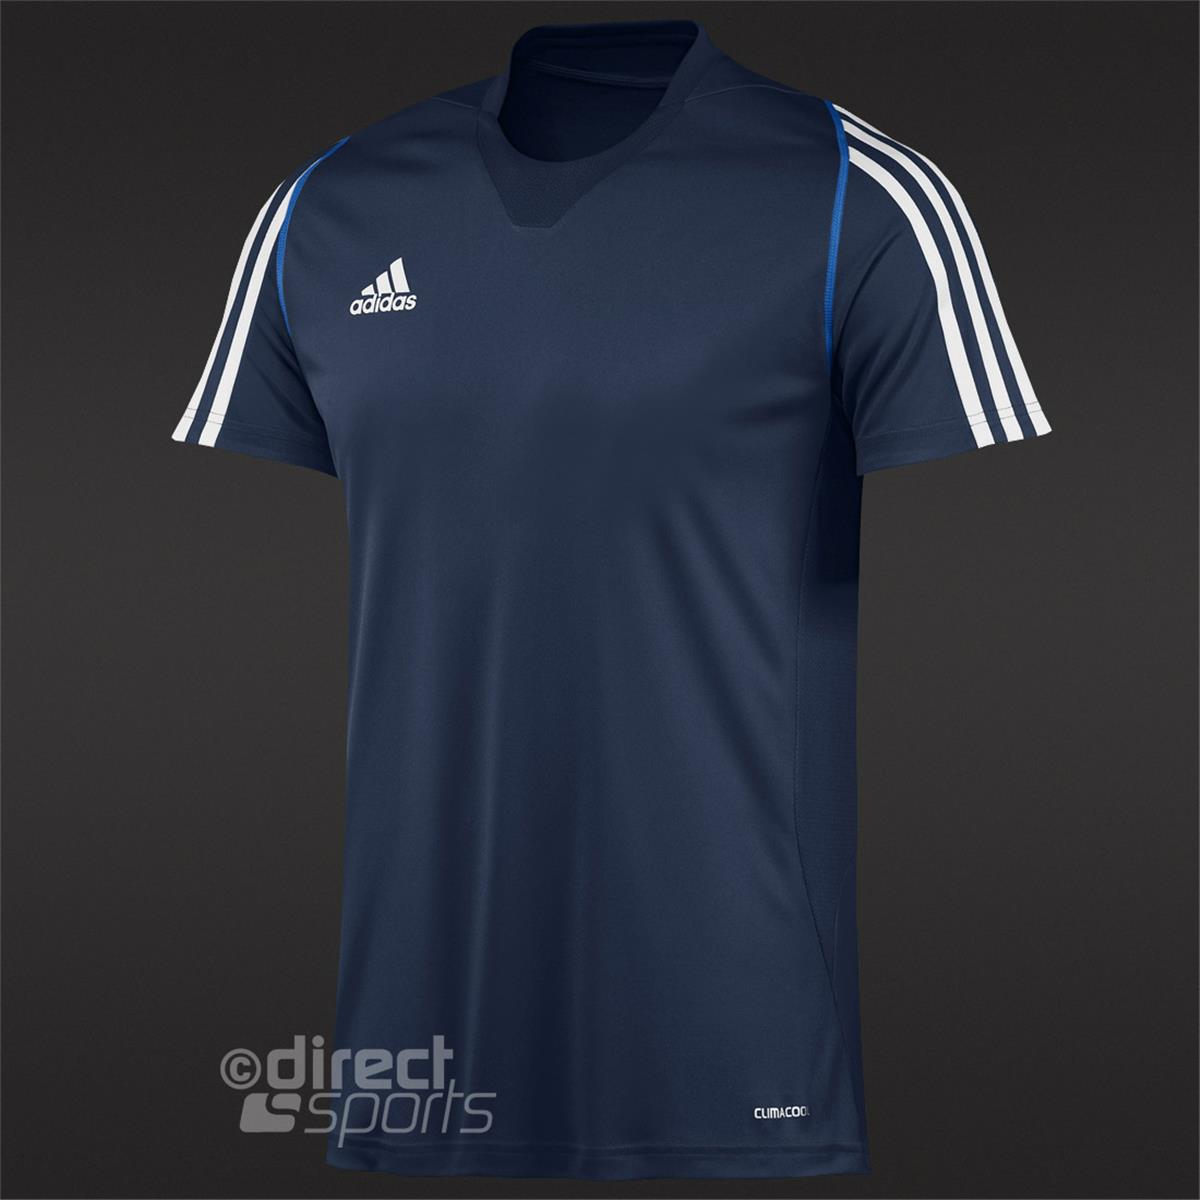 adidas sports t shirt design wwwpixsharkcom images